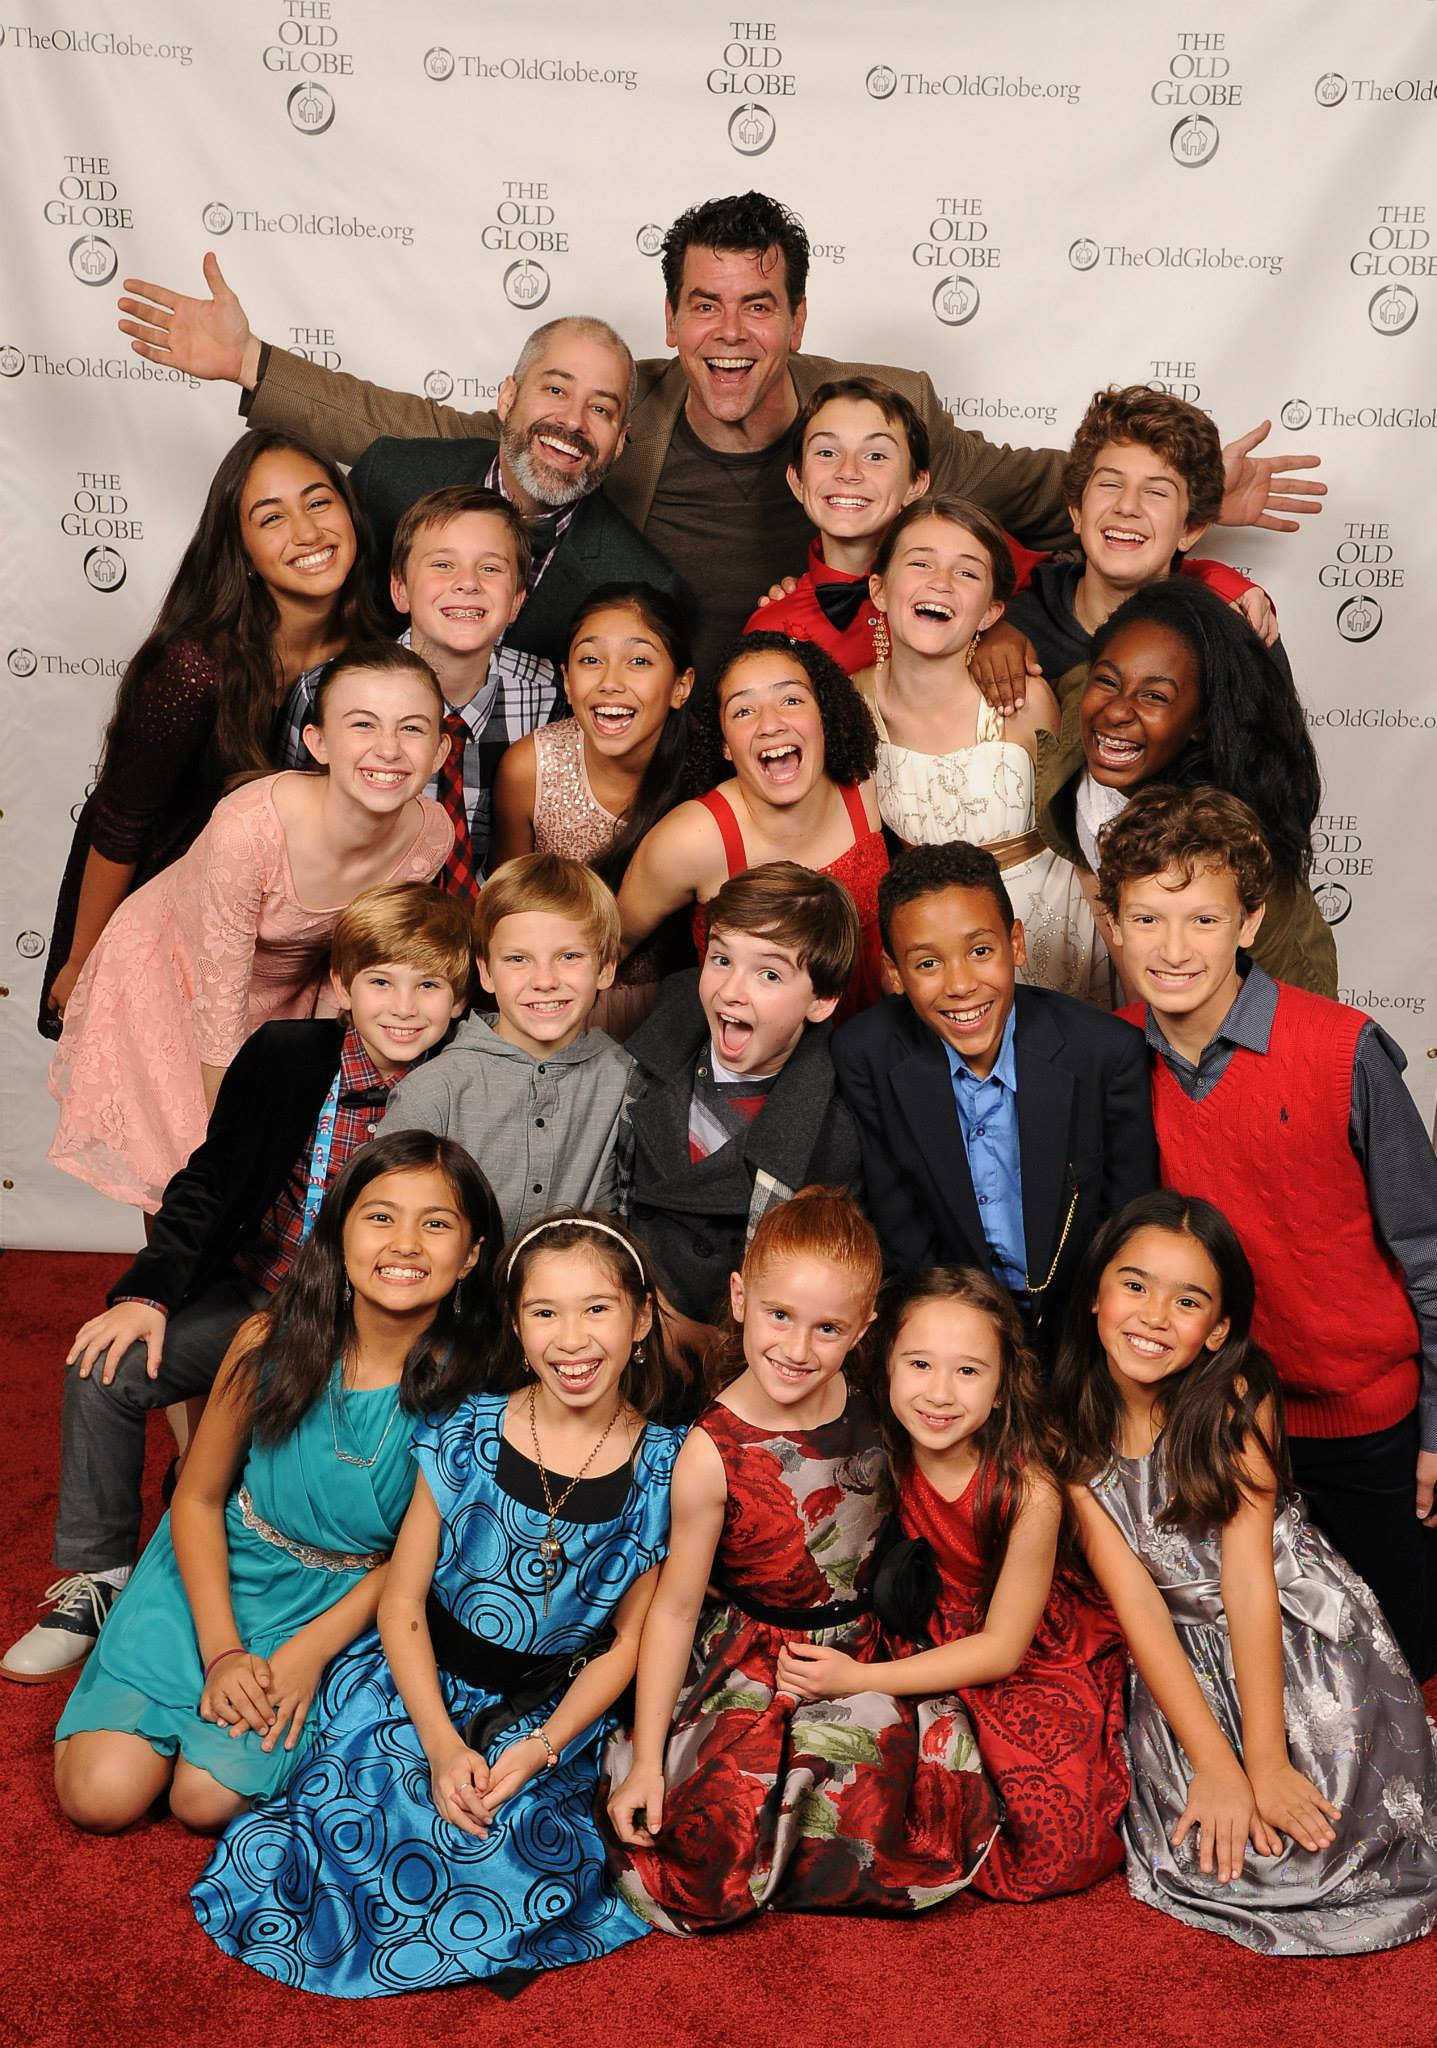 The kids of Whoville with Director James Vasquez and the Grinch (Burke Moses) - Photo by Douglas Gates.